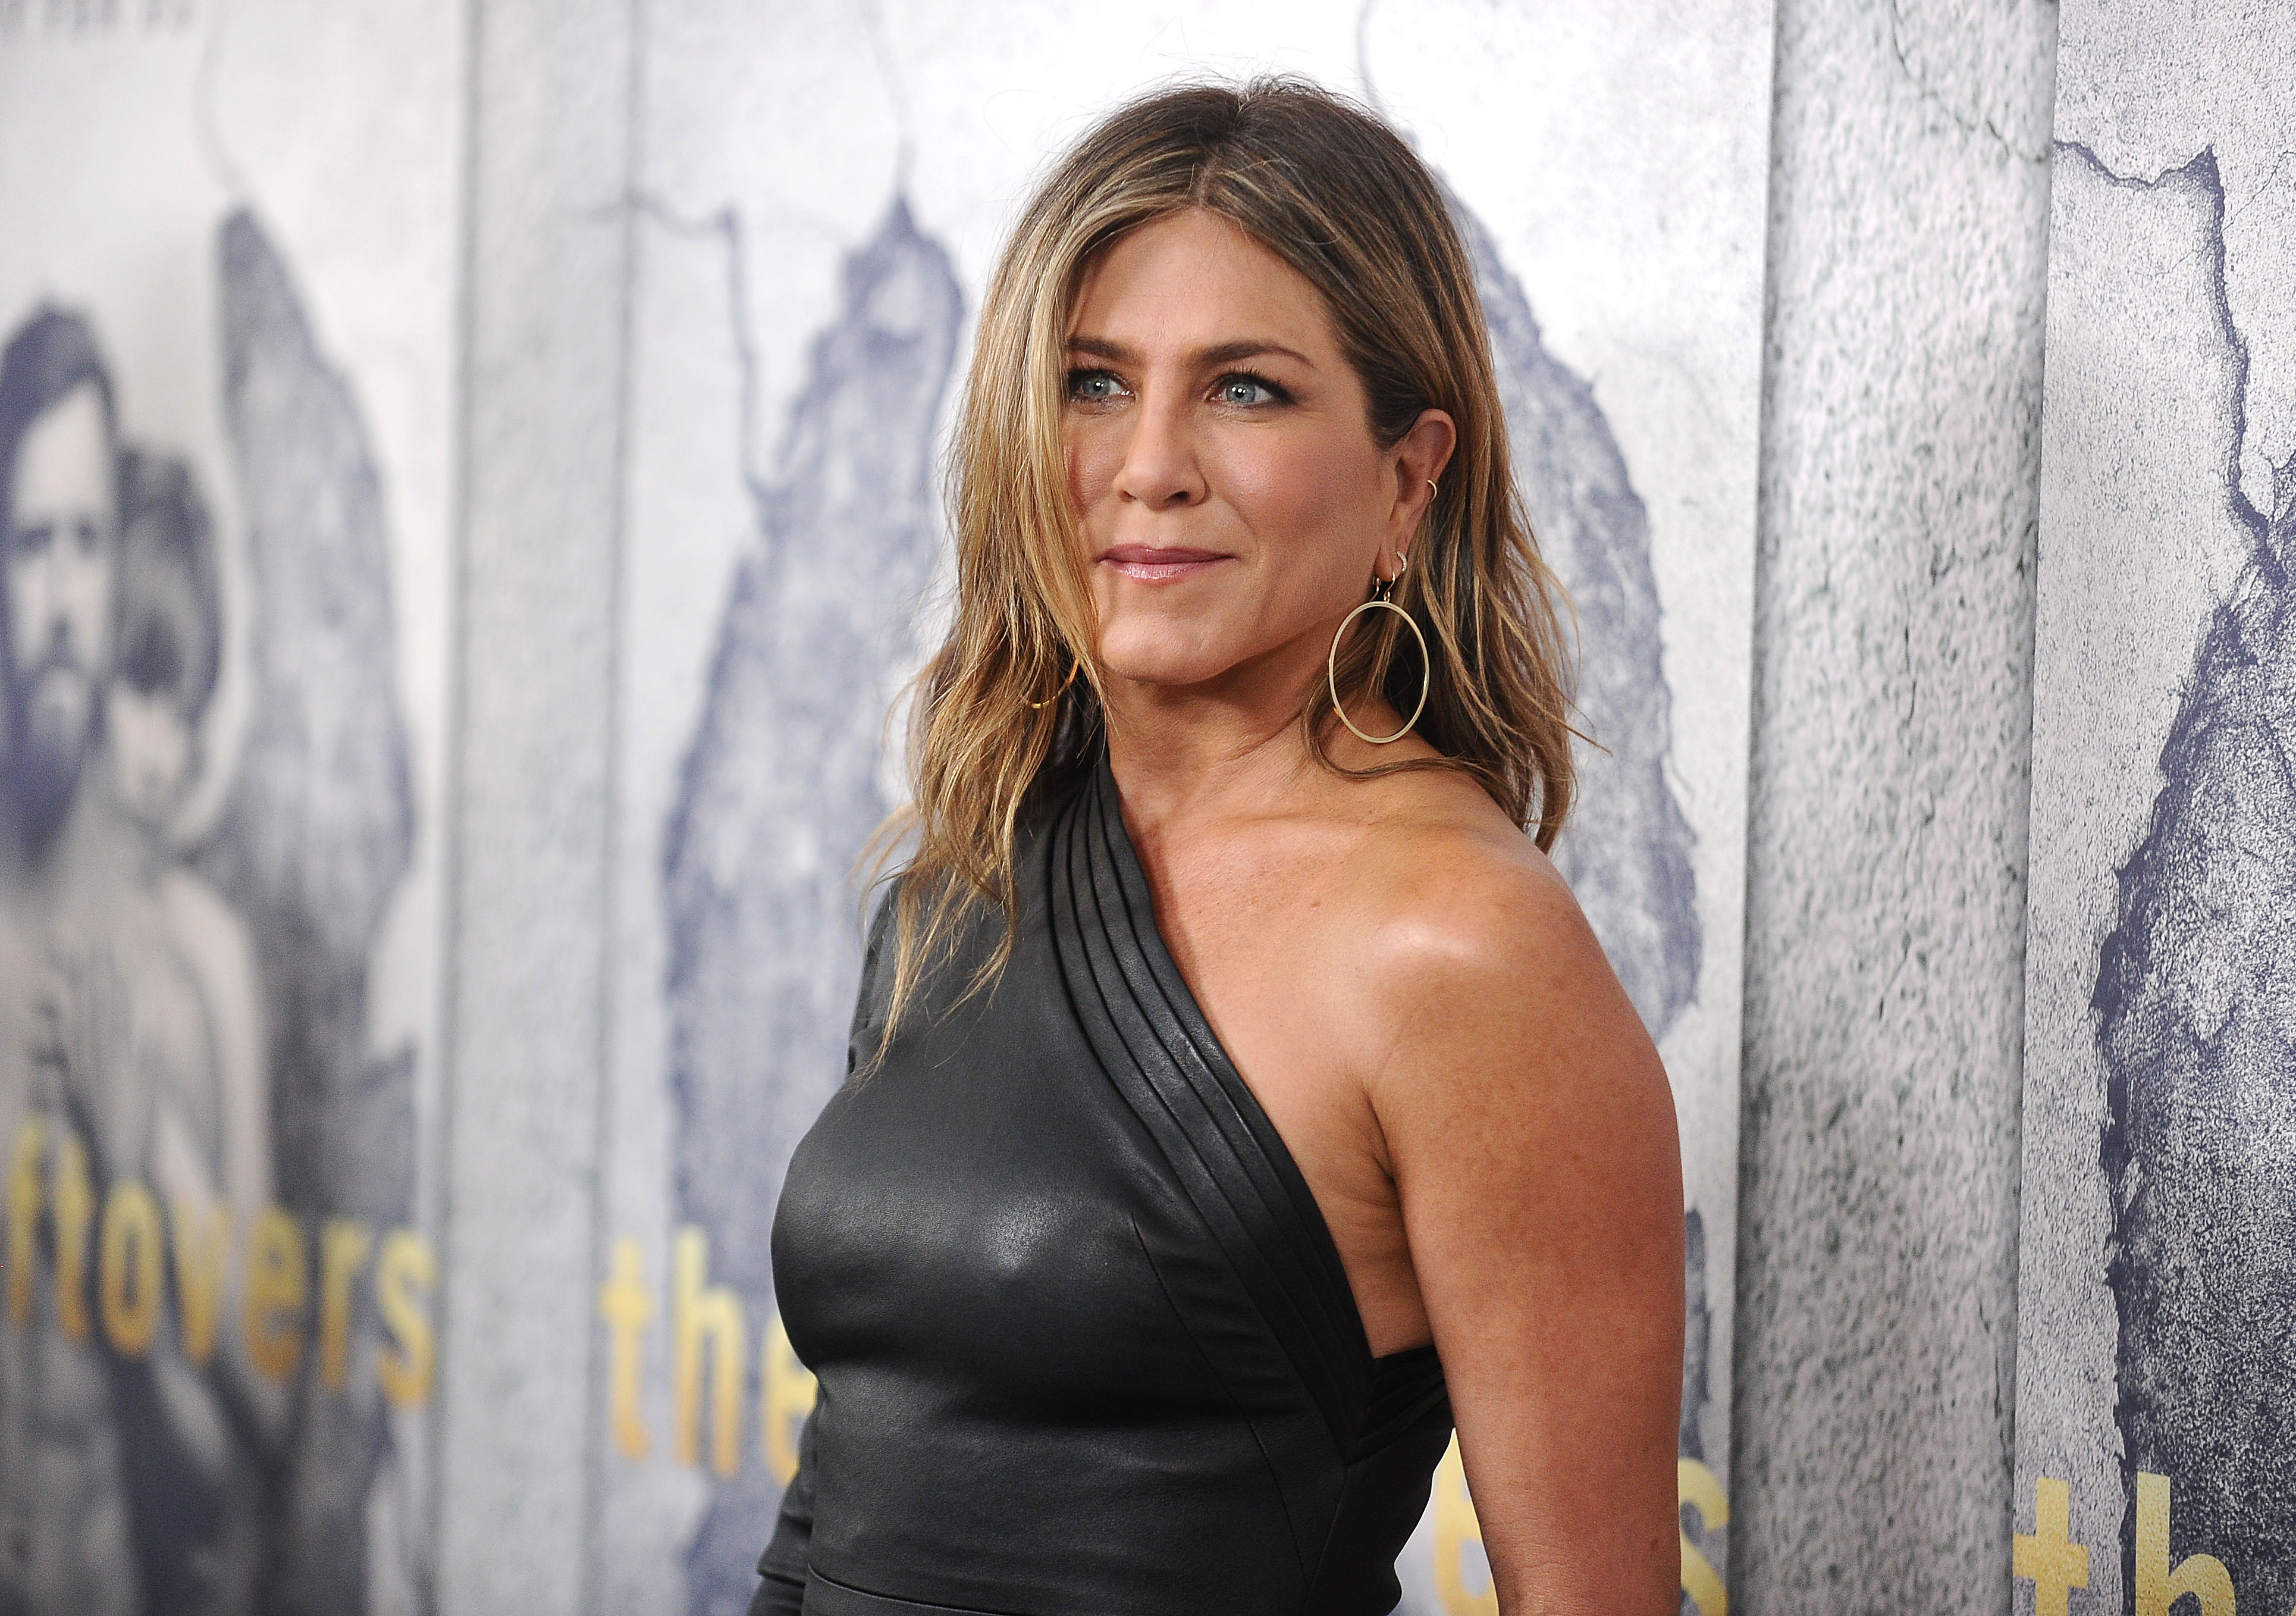 Fotos Jennifer Aniston nude (55 foto and video), Pussy, Hot, Boobs, braless 2020